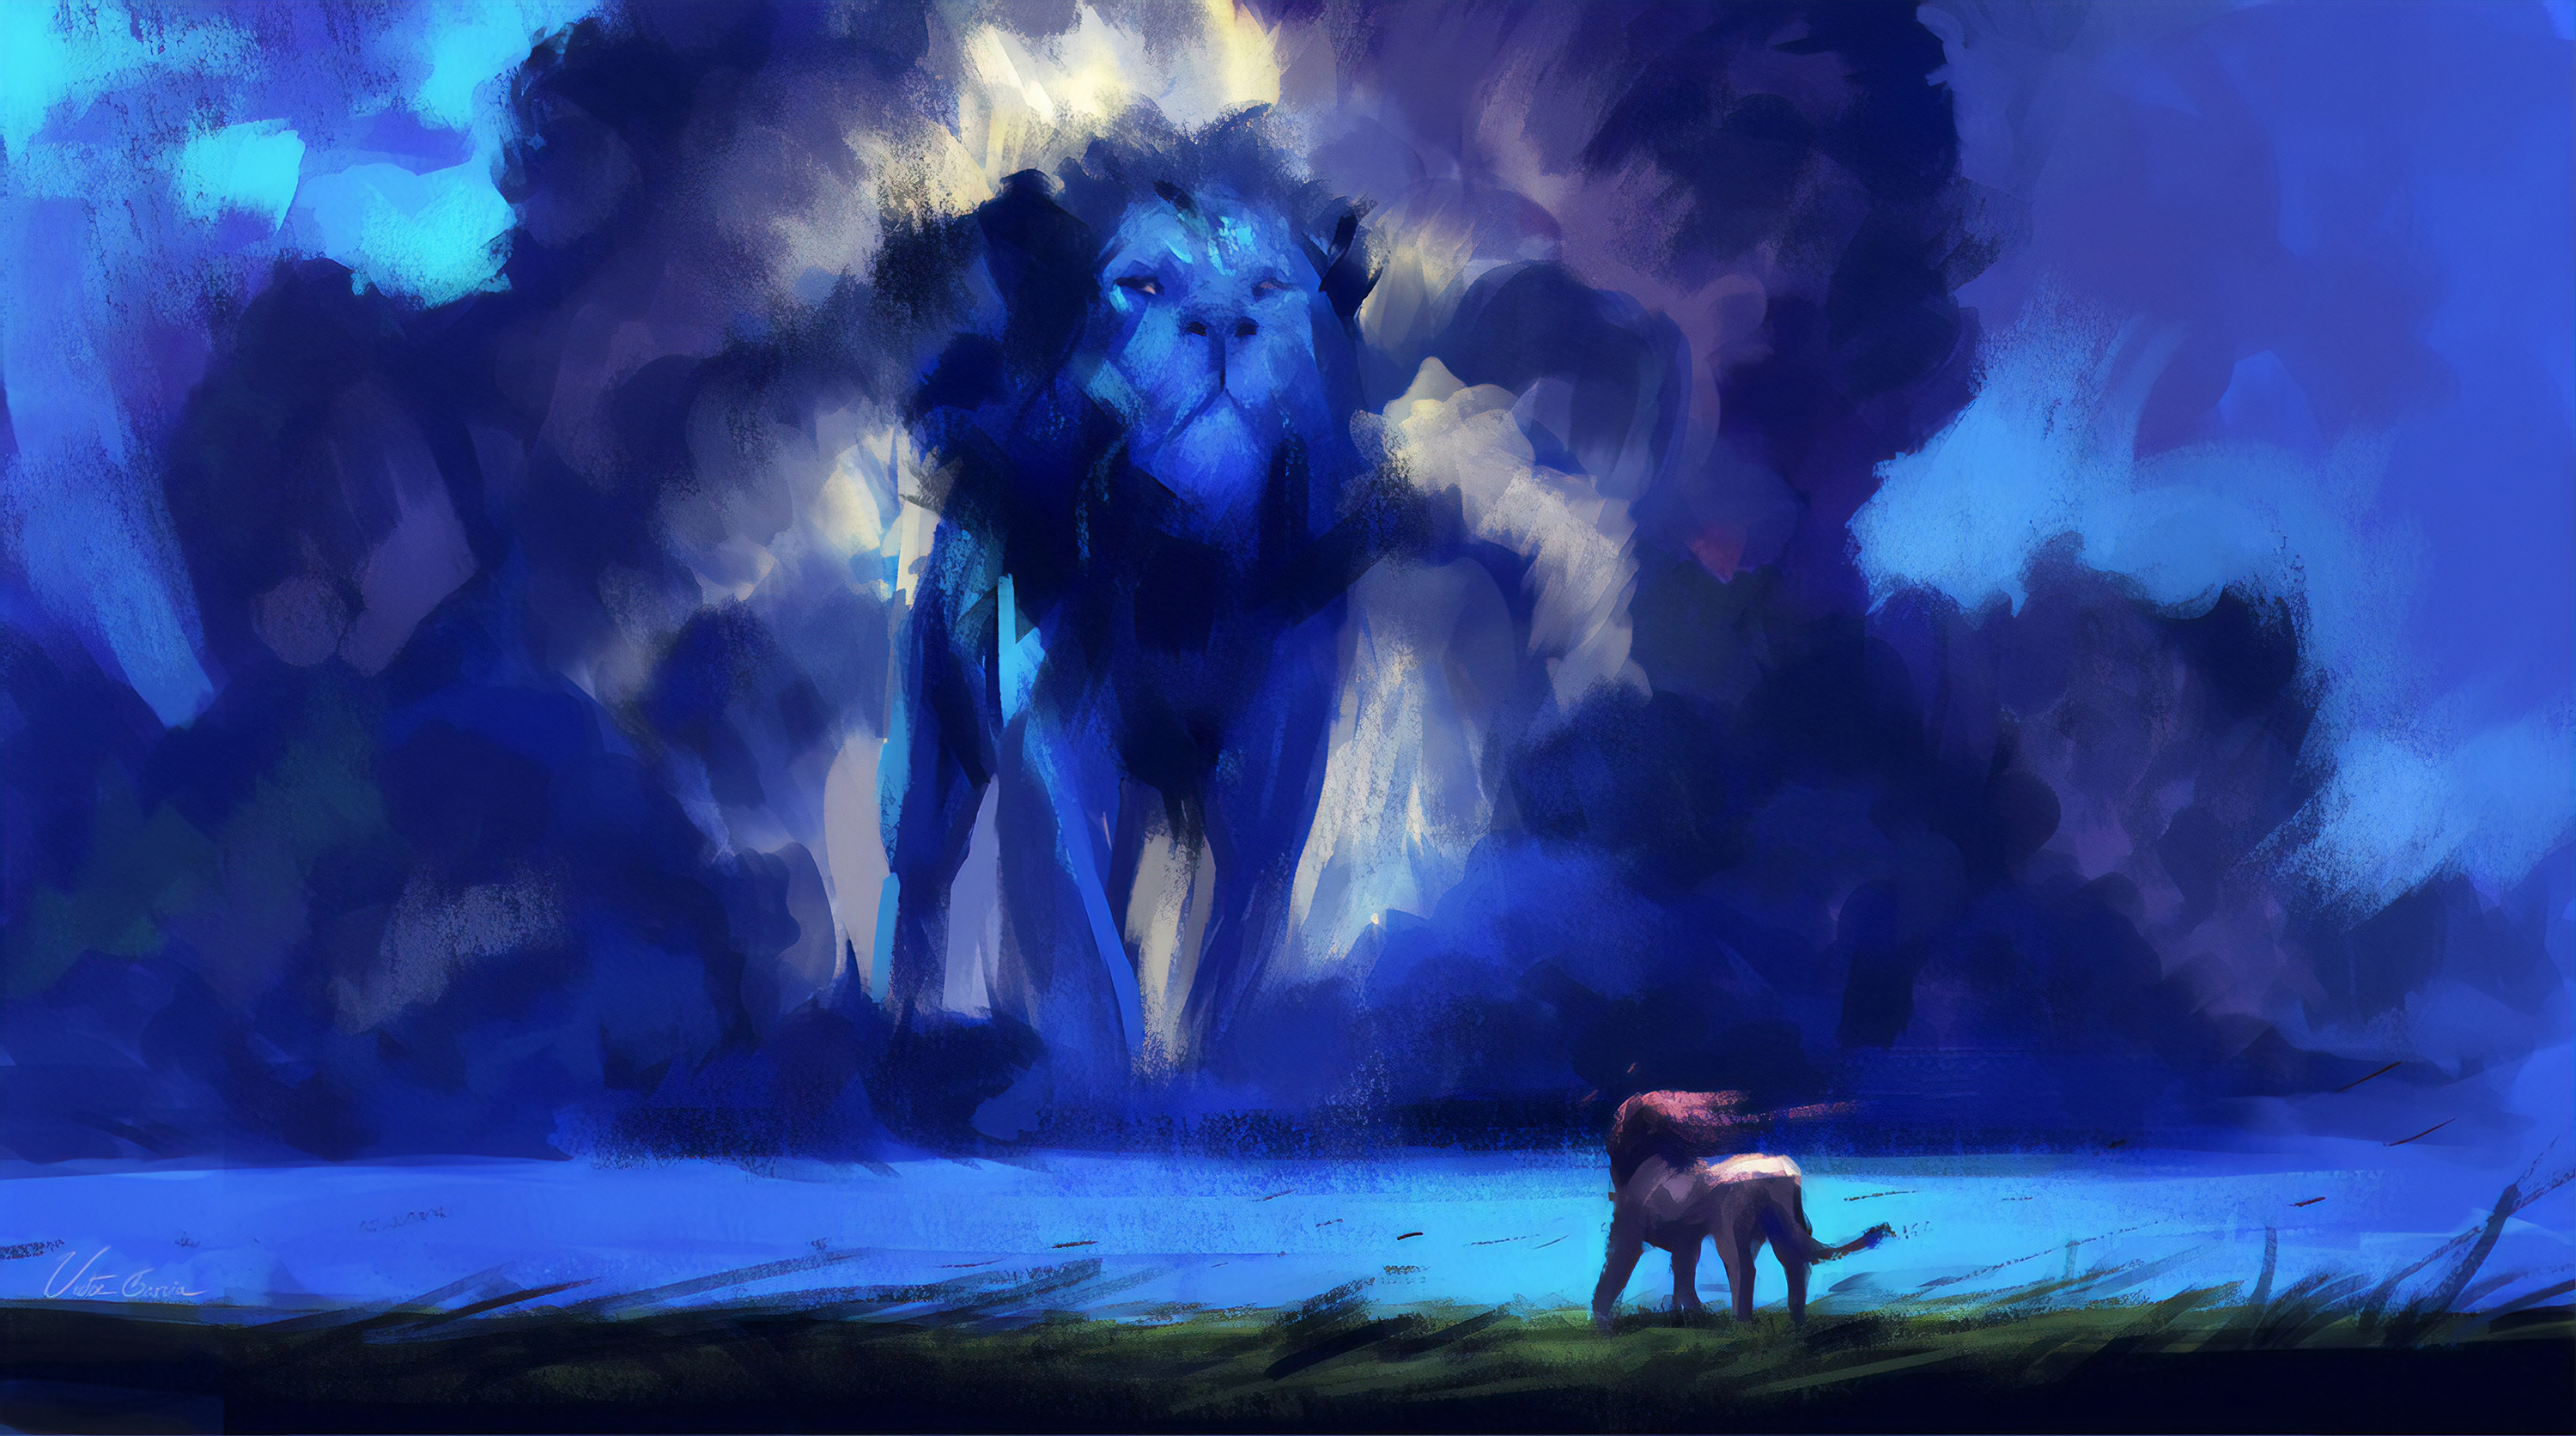 The Lion King Movie Sketch Art Hd Movies 4k Wallpapers